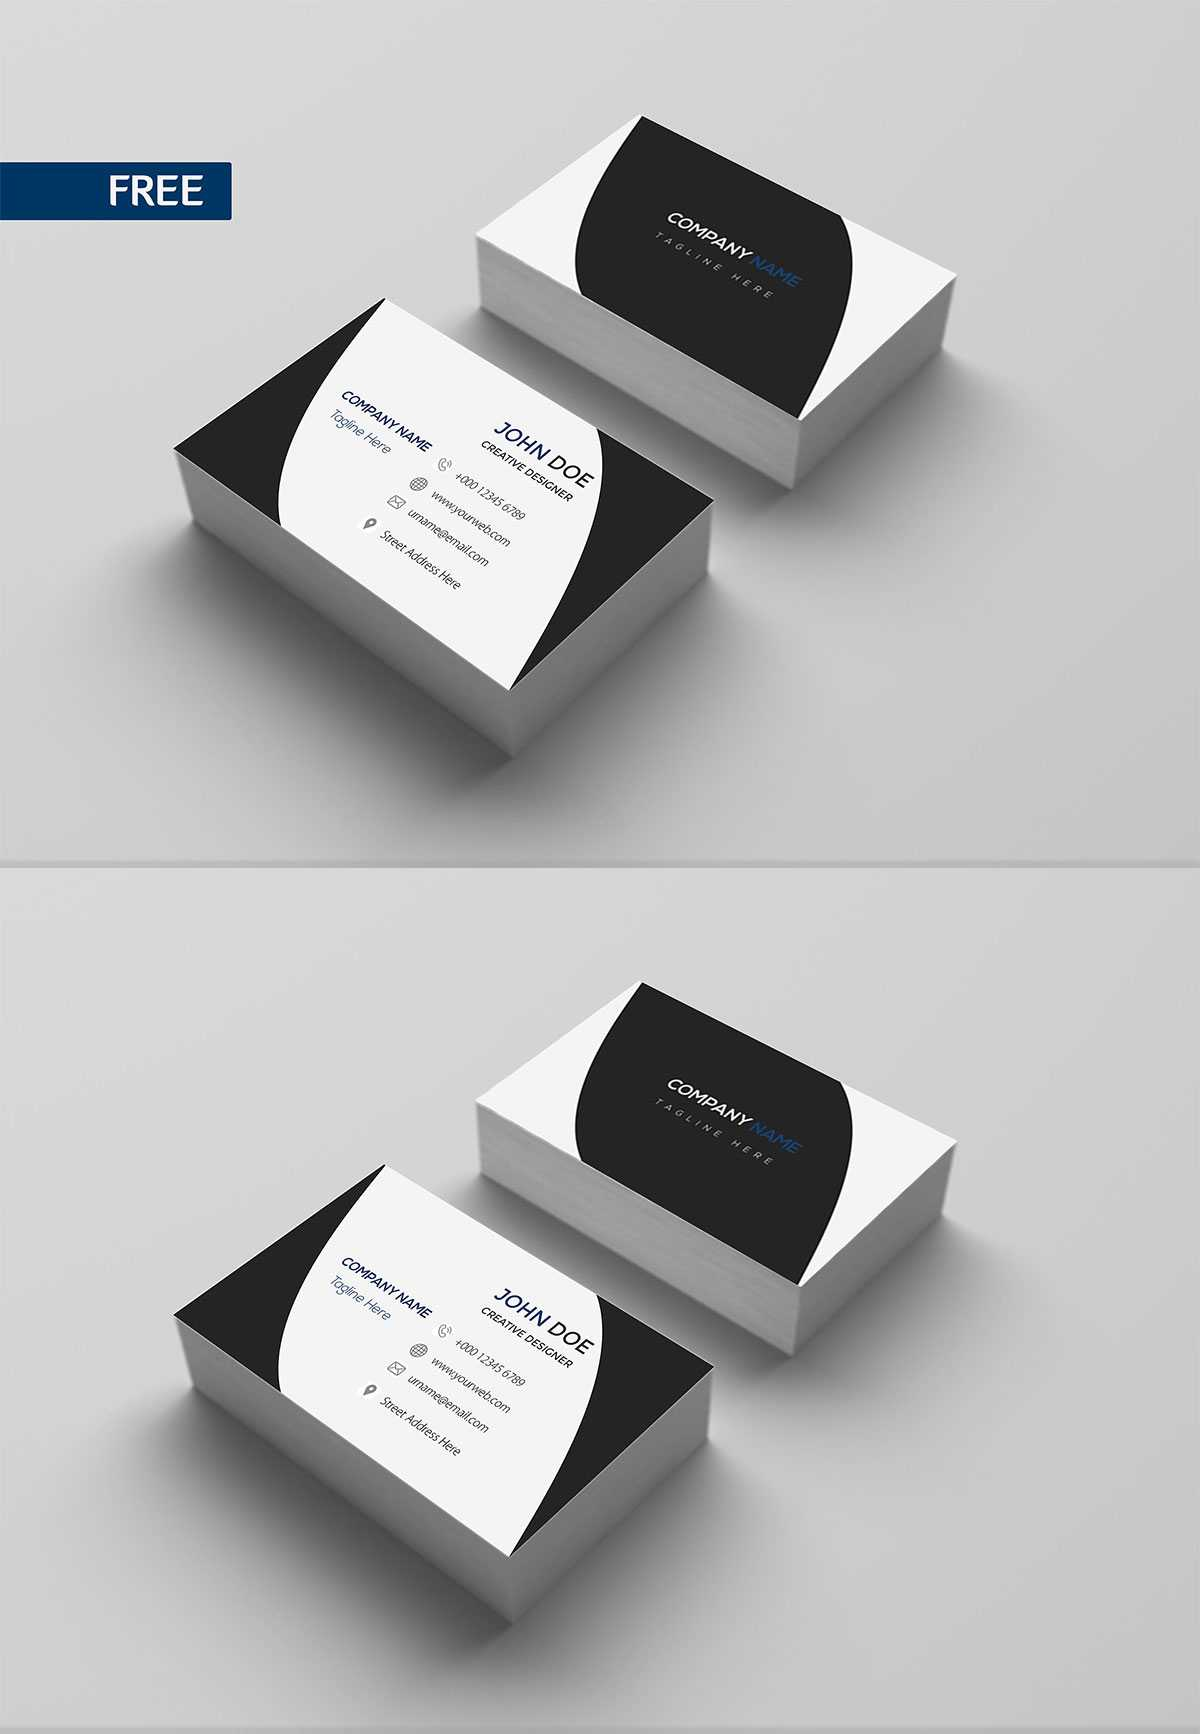 Free Print Design Business Card Template - Creativetacos inside Free Bussiness Card Template